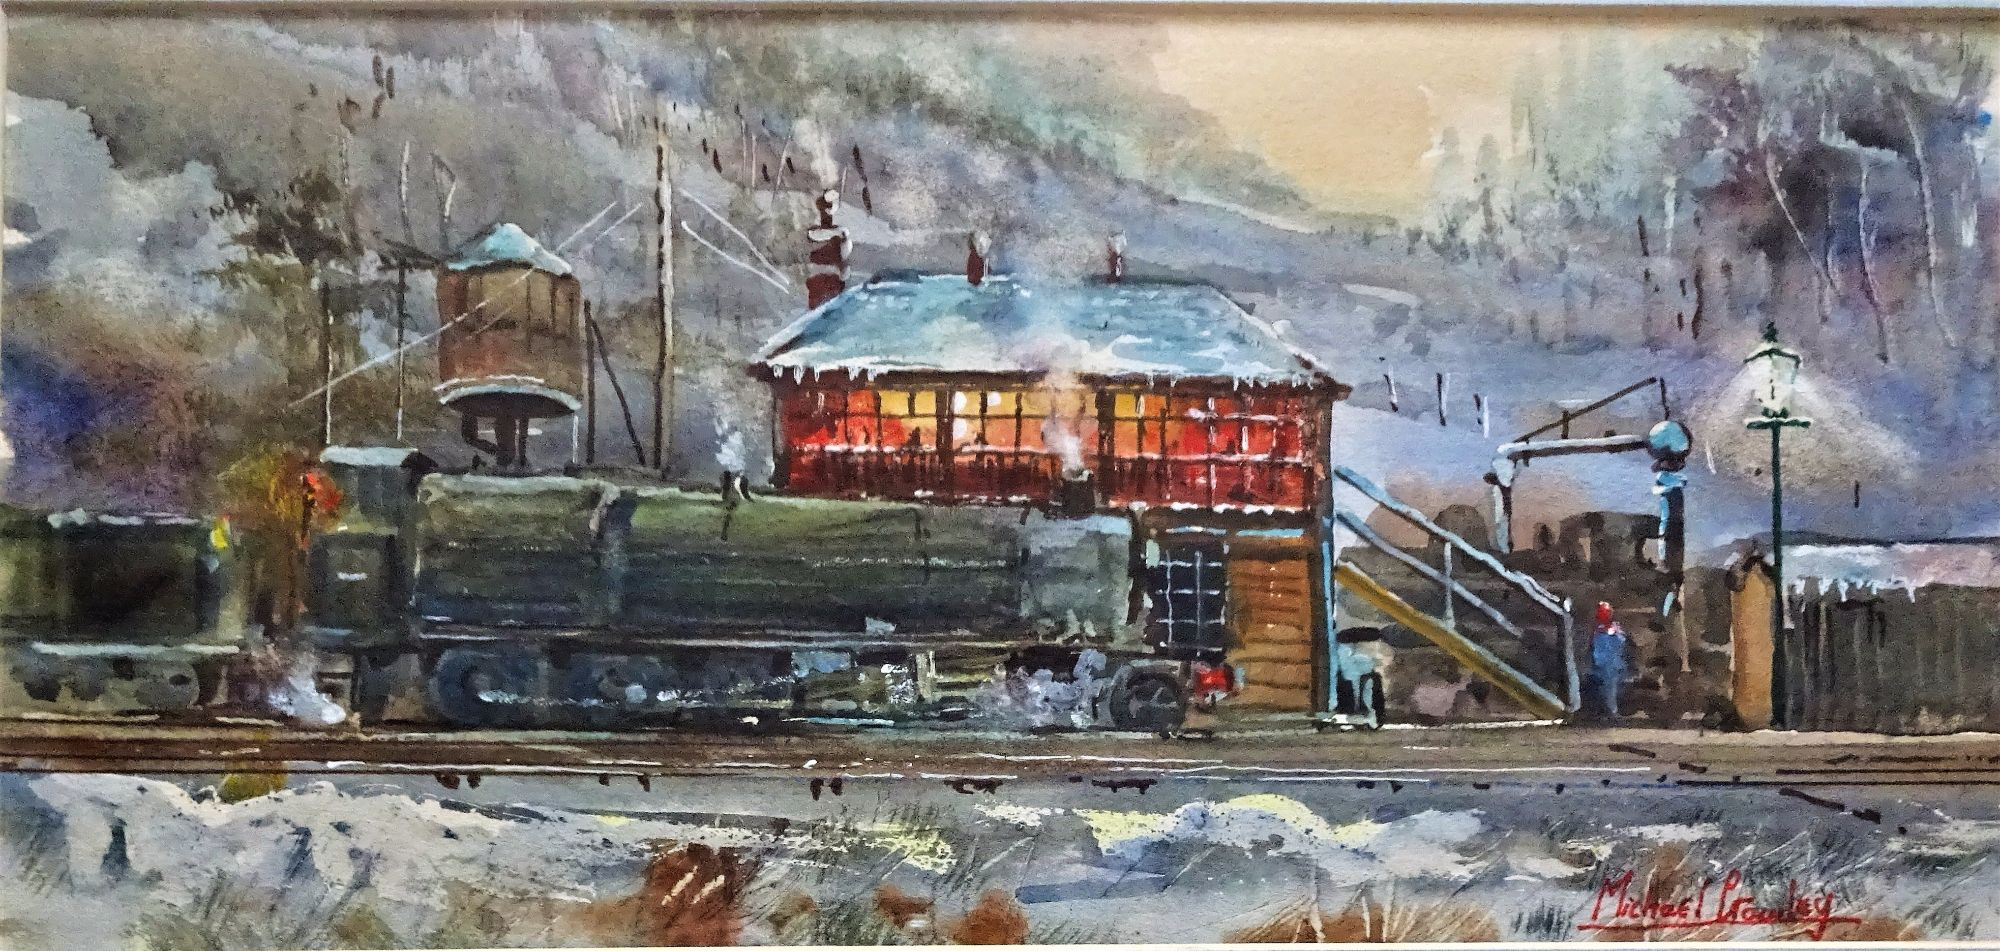 Michael Crawley, Steam Locomotive taking Water, watercolour, c1960.